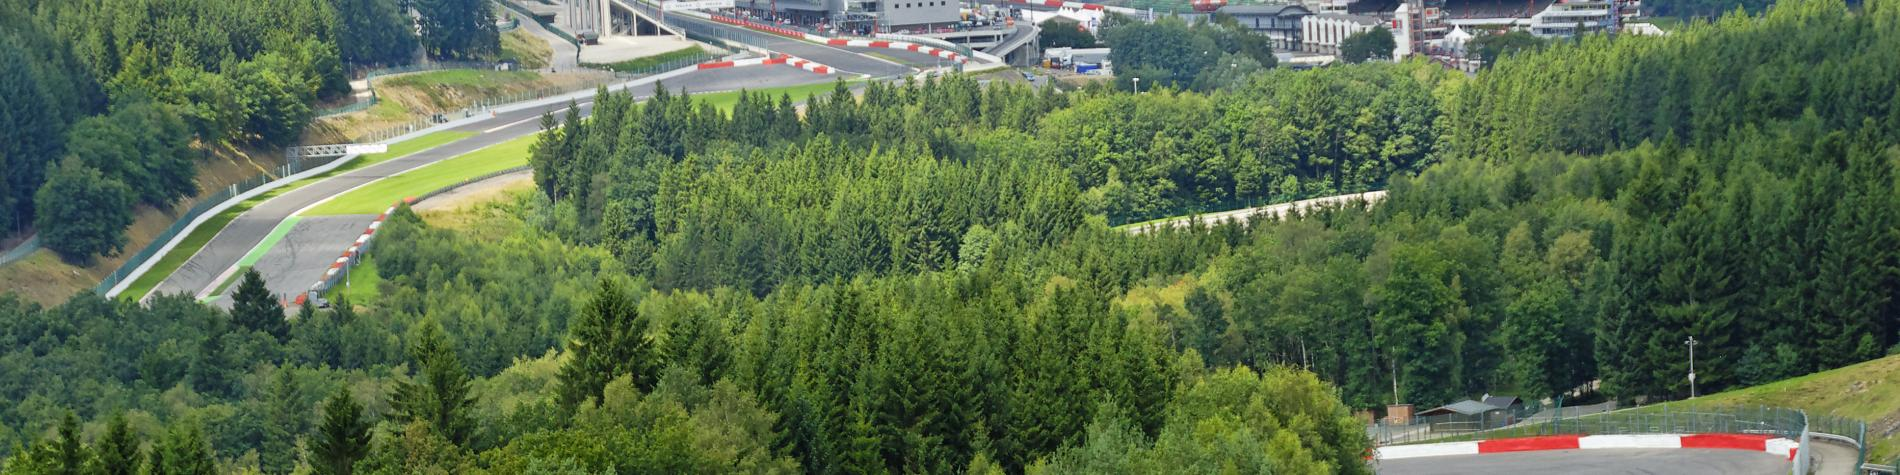 Circuit - Spa-Francorchamps - couse automobile